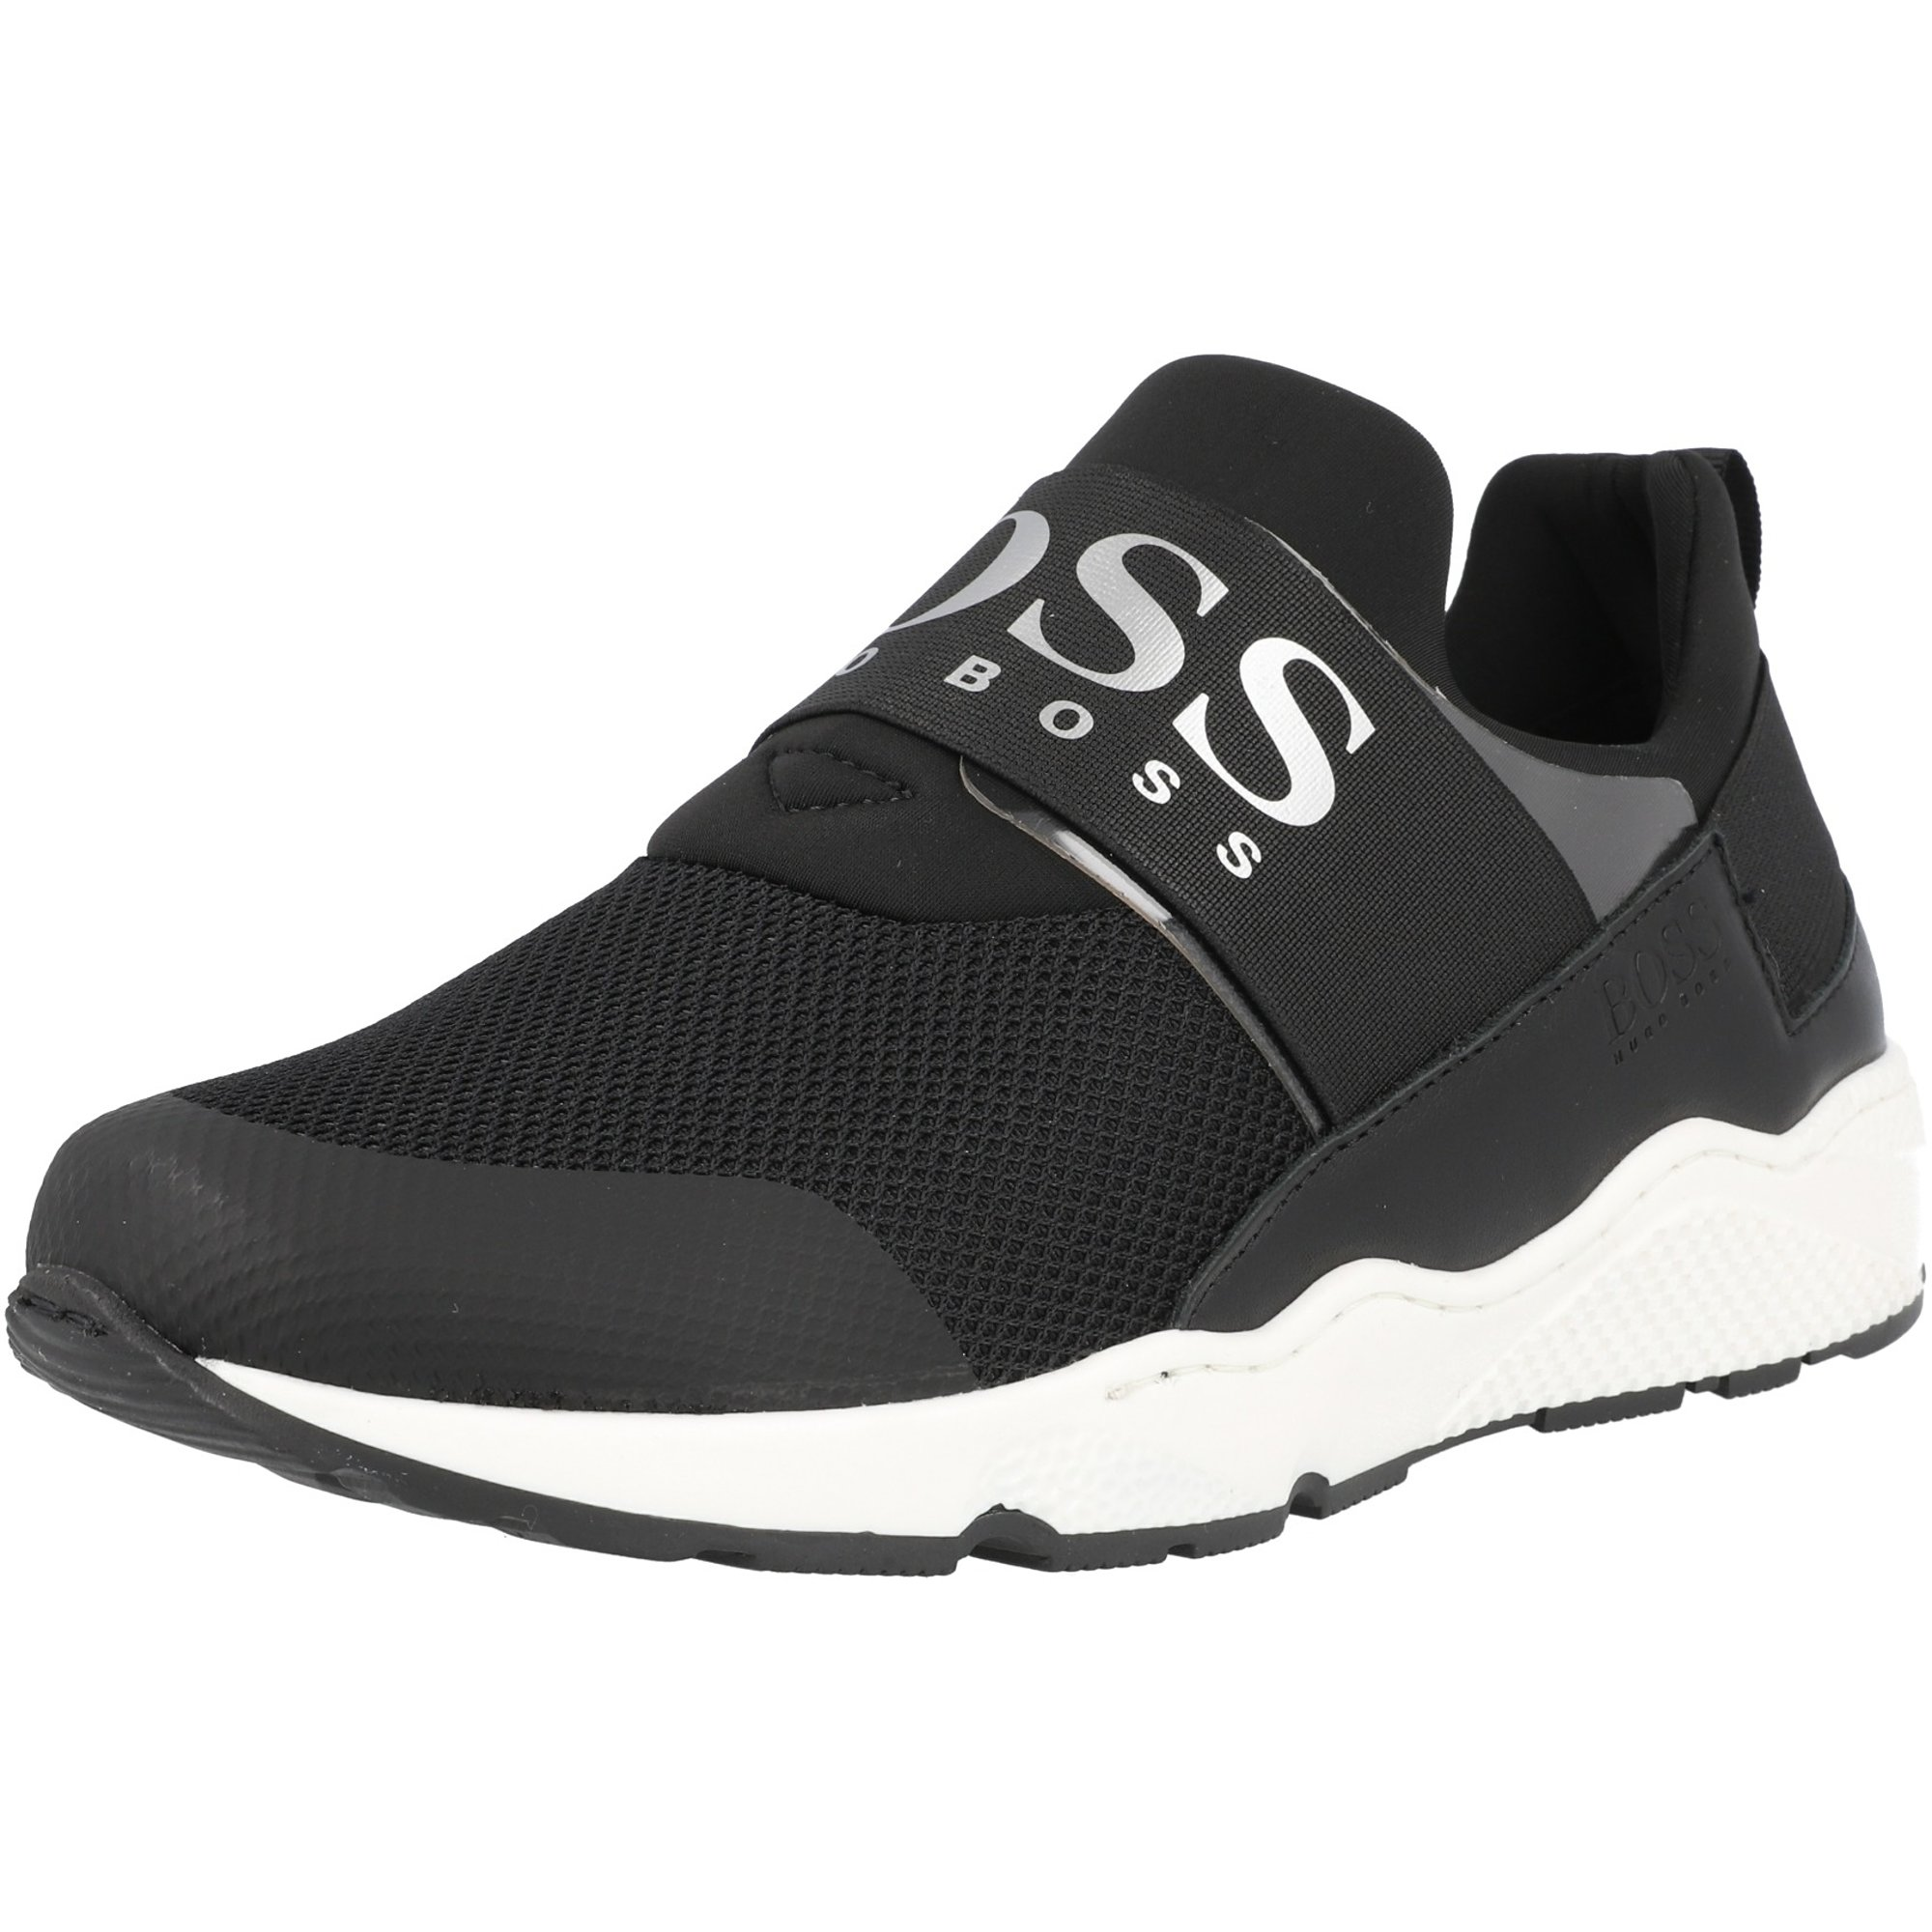 BOSS Trainers Black Fabric Polyester